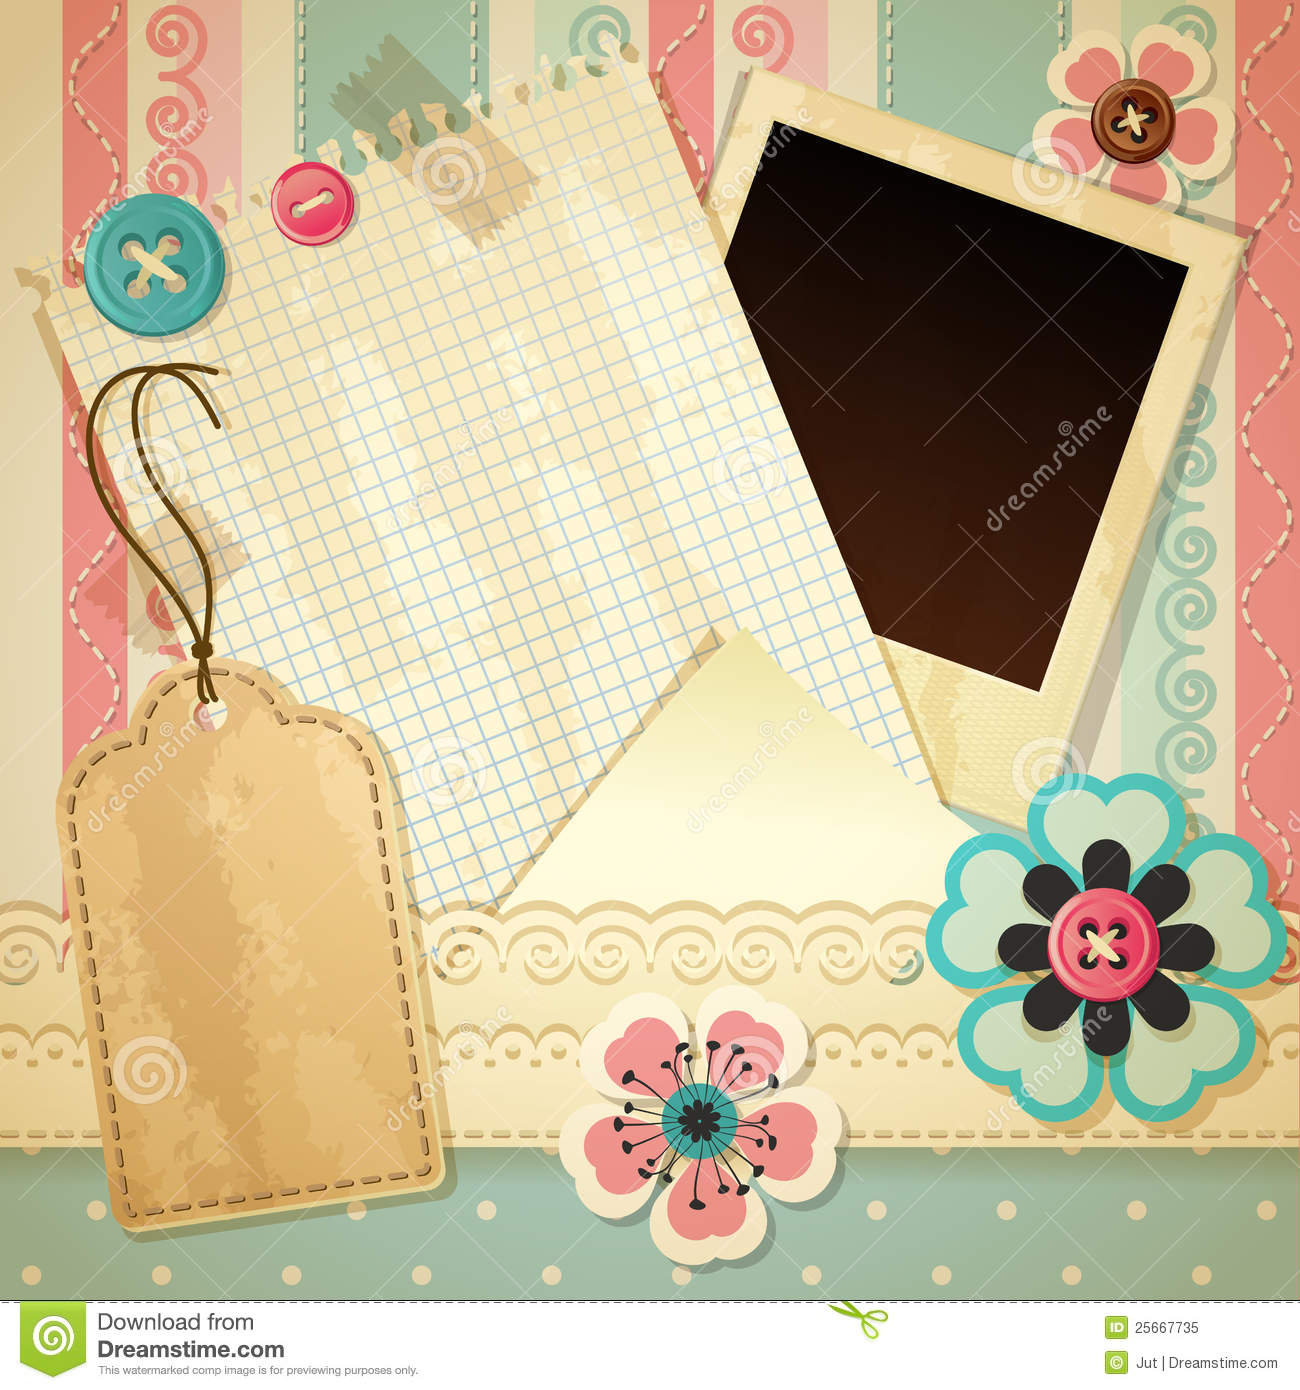 scrapbook template stock vector. illustration of decor - 25667735, Modern powerpoint